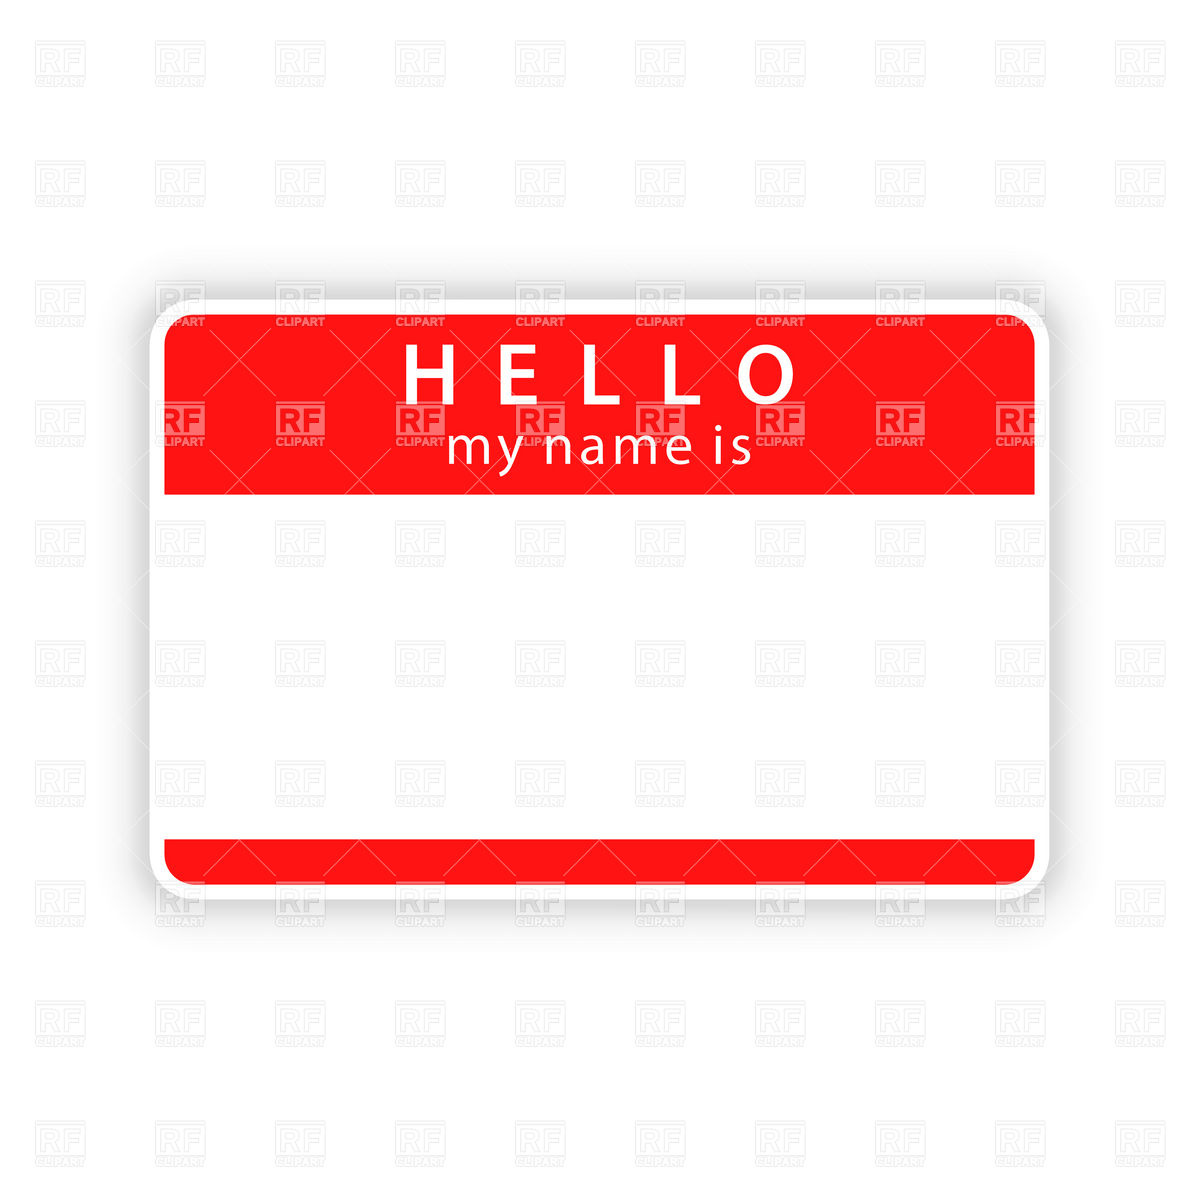 Name badge clipart.